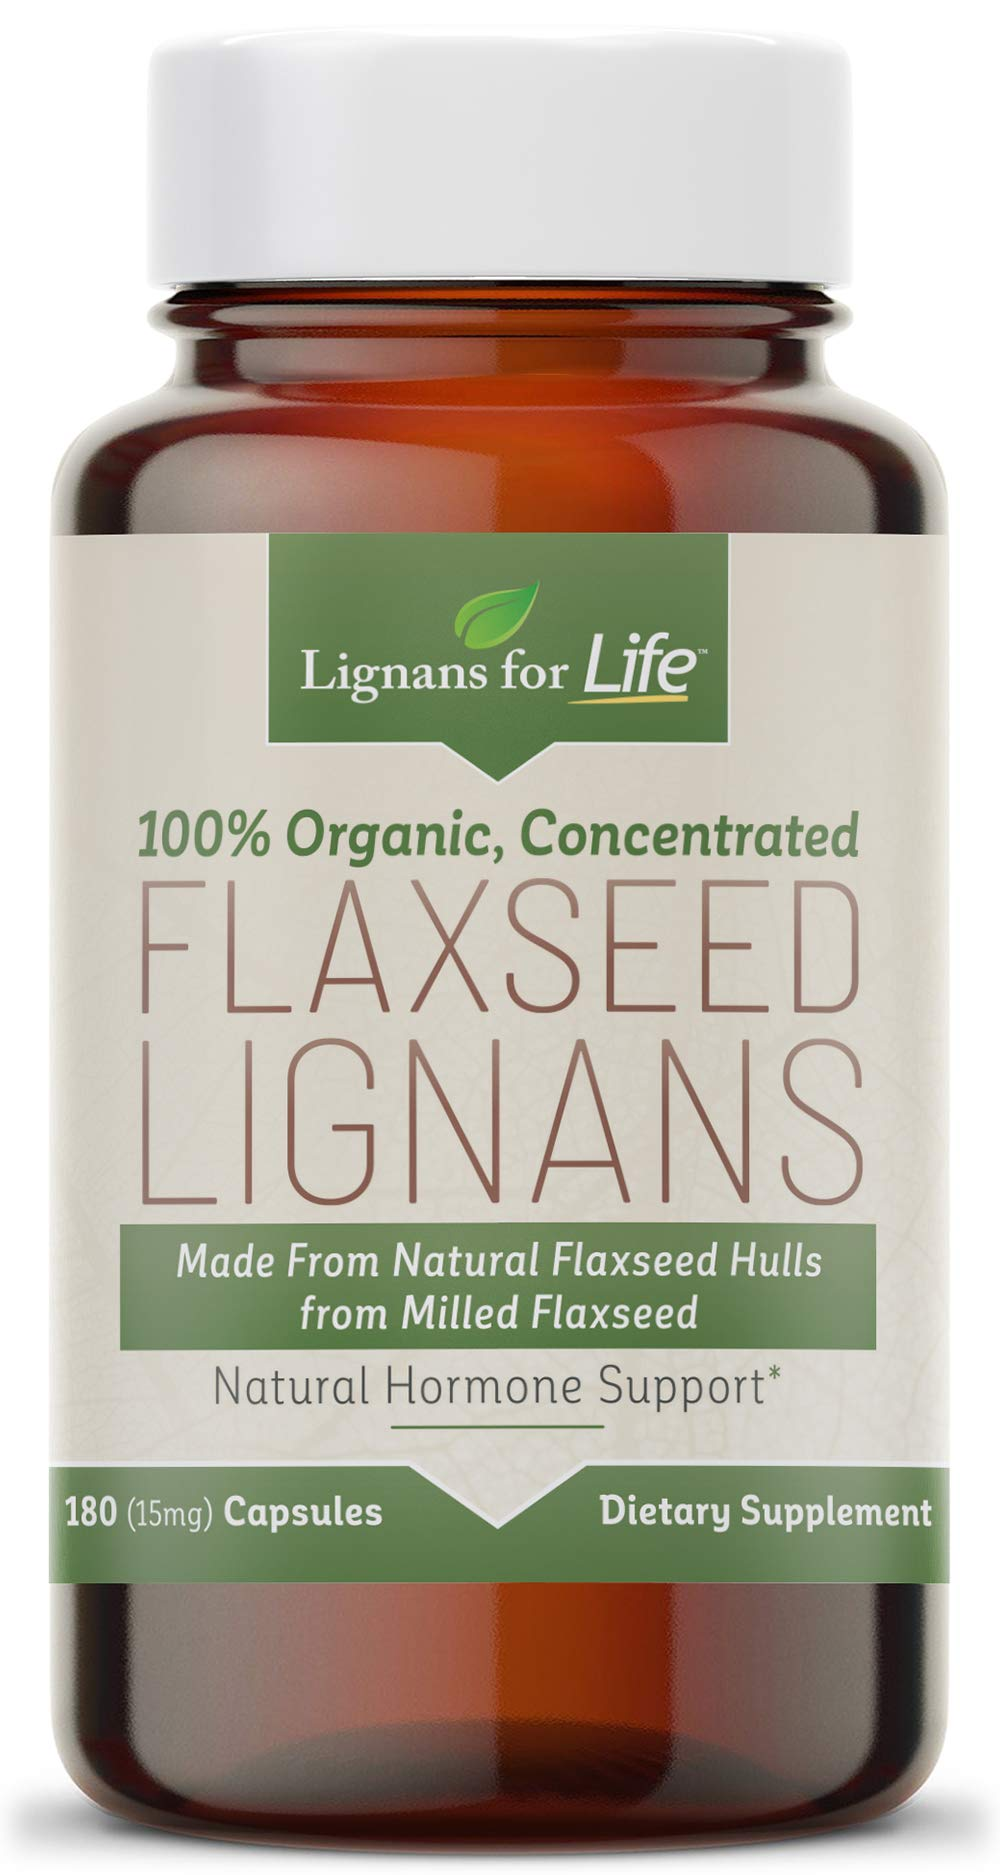 Organic Flaxseed LIgnans 30 mg Flax Hulls by Lignans For Life (Image #1)